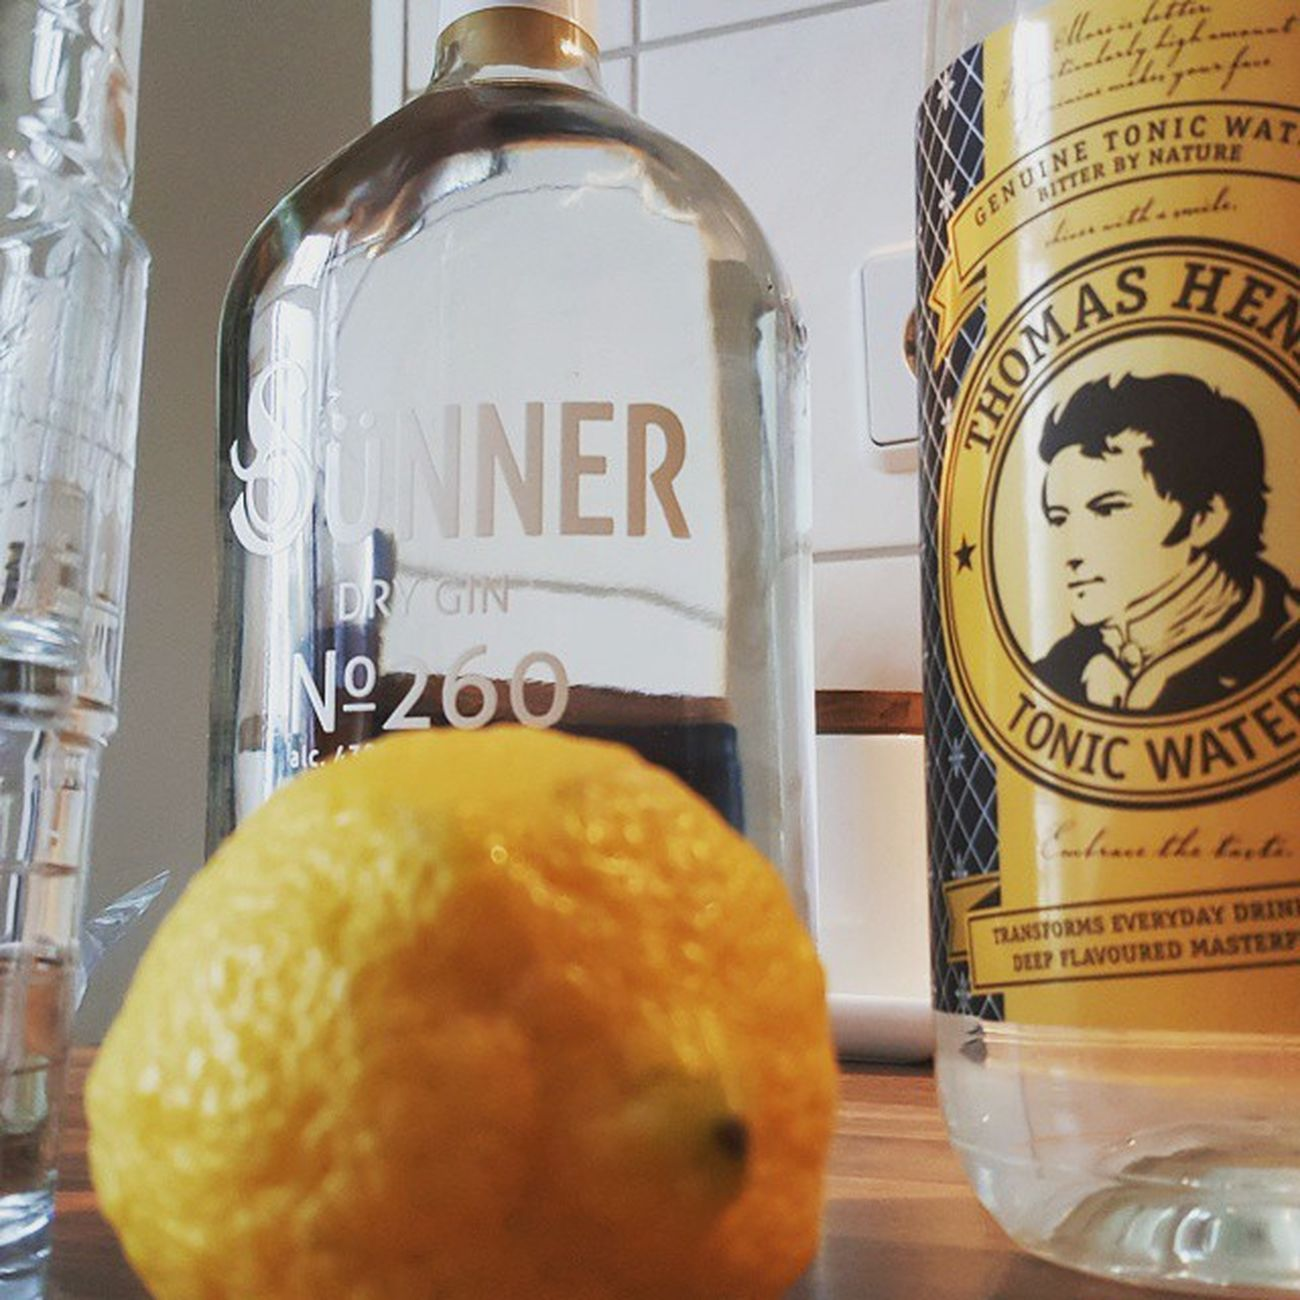 Sünner Gin Gintonic Big25